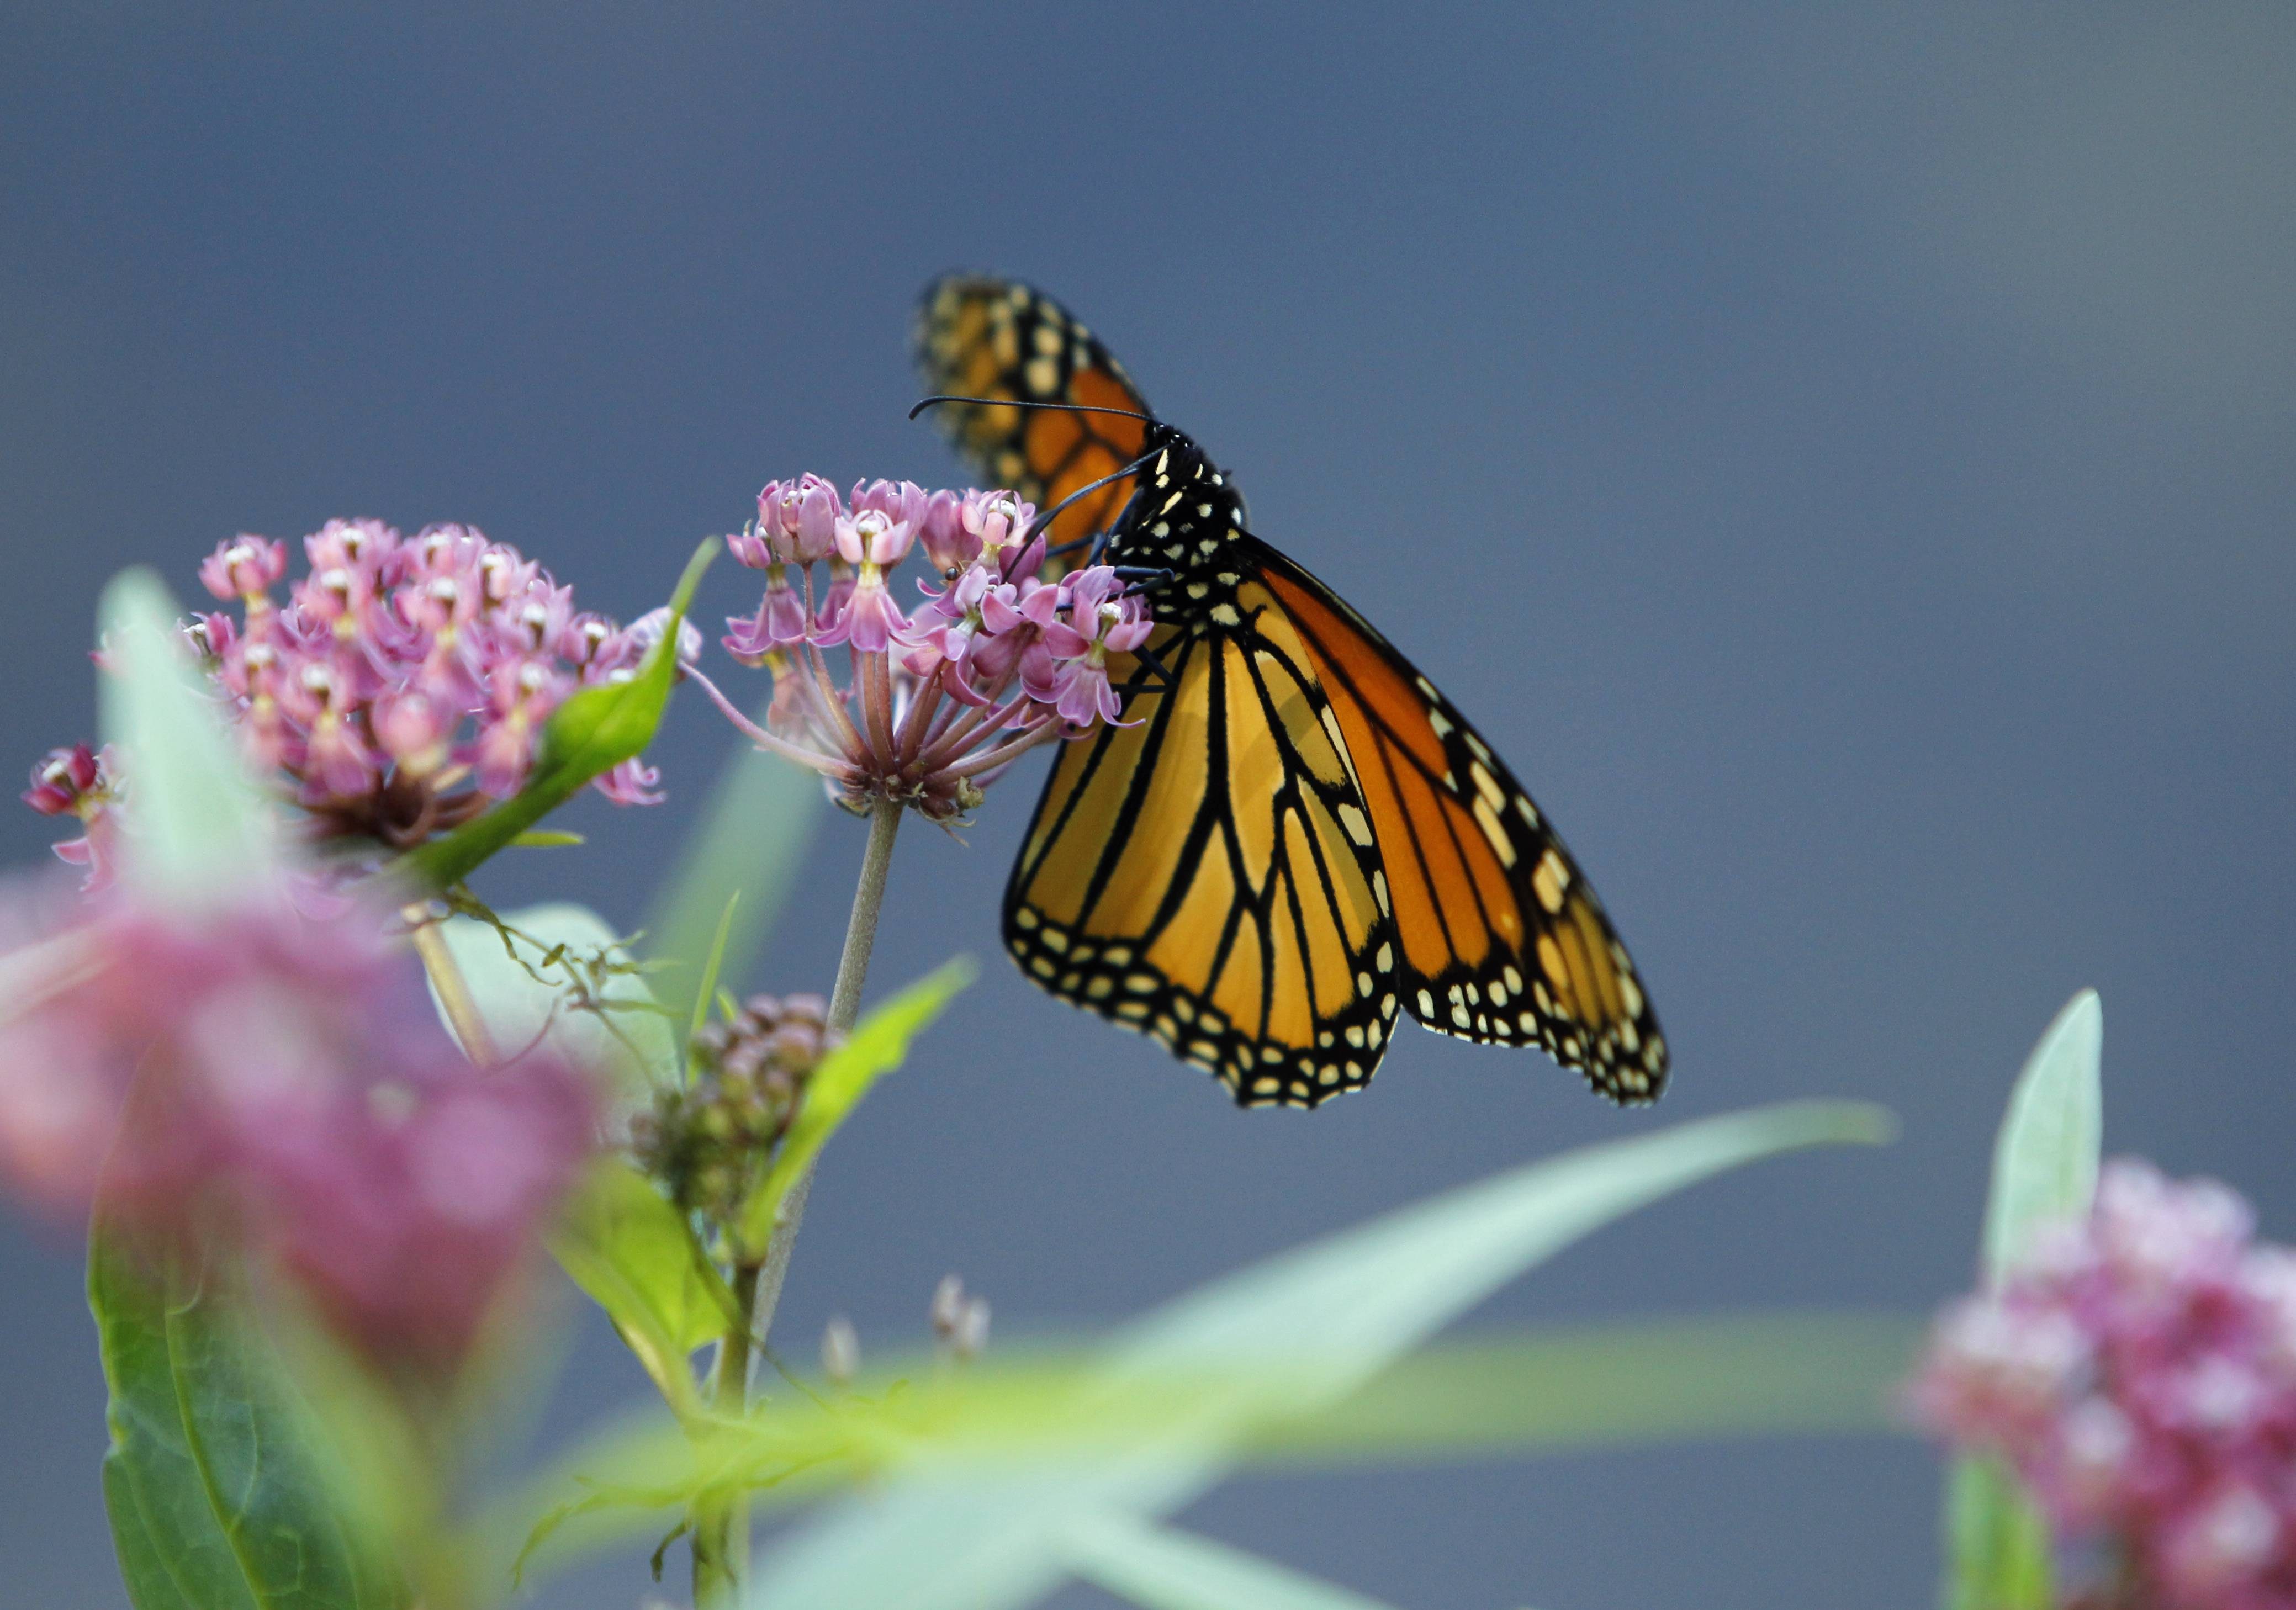 A monarch butterfly eats nectar from a swamp milkweed on the shore of Rock Lake in Pequot Lakes, Minn. A new study published in the journal Nature Communications suggests monarch butterflies use an internal magnetic compass to help navigate on their annual migrations from North America to central Mexico.